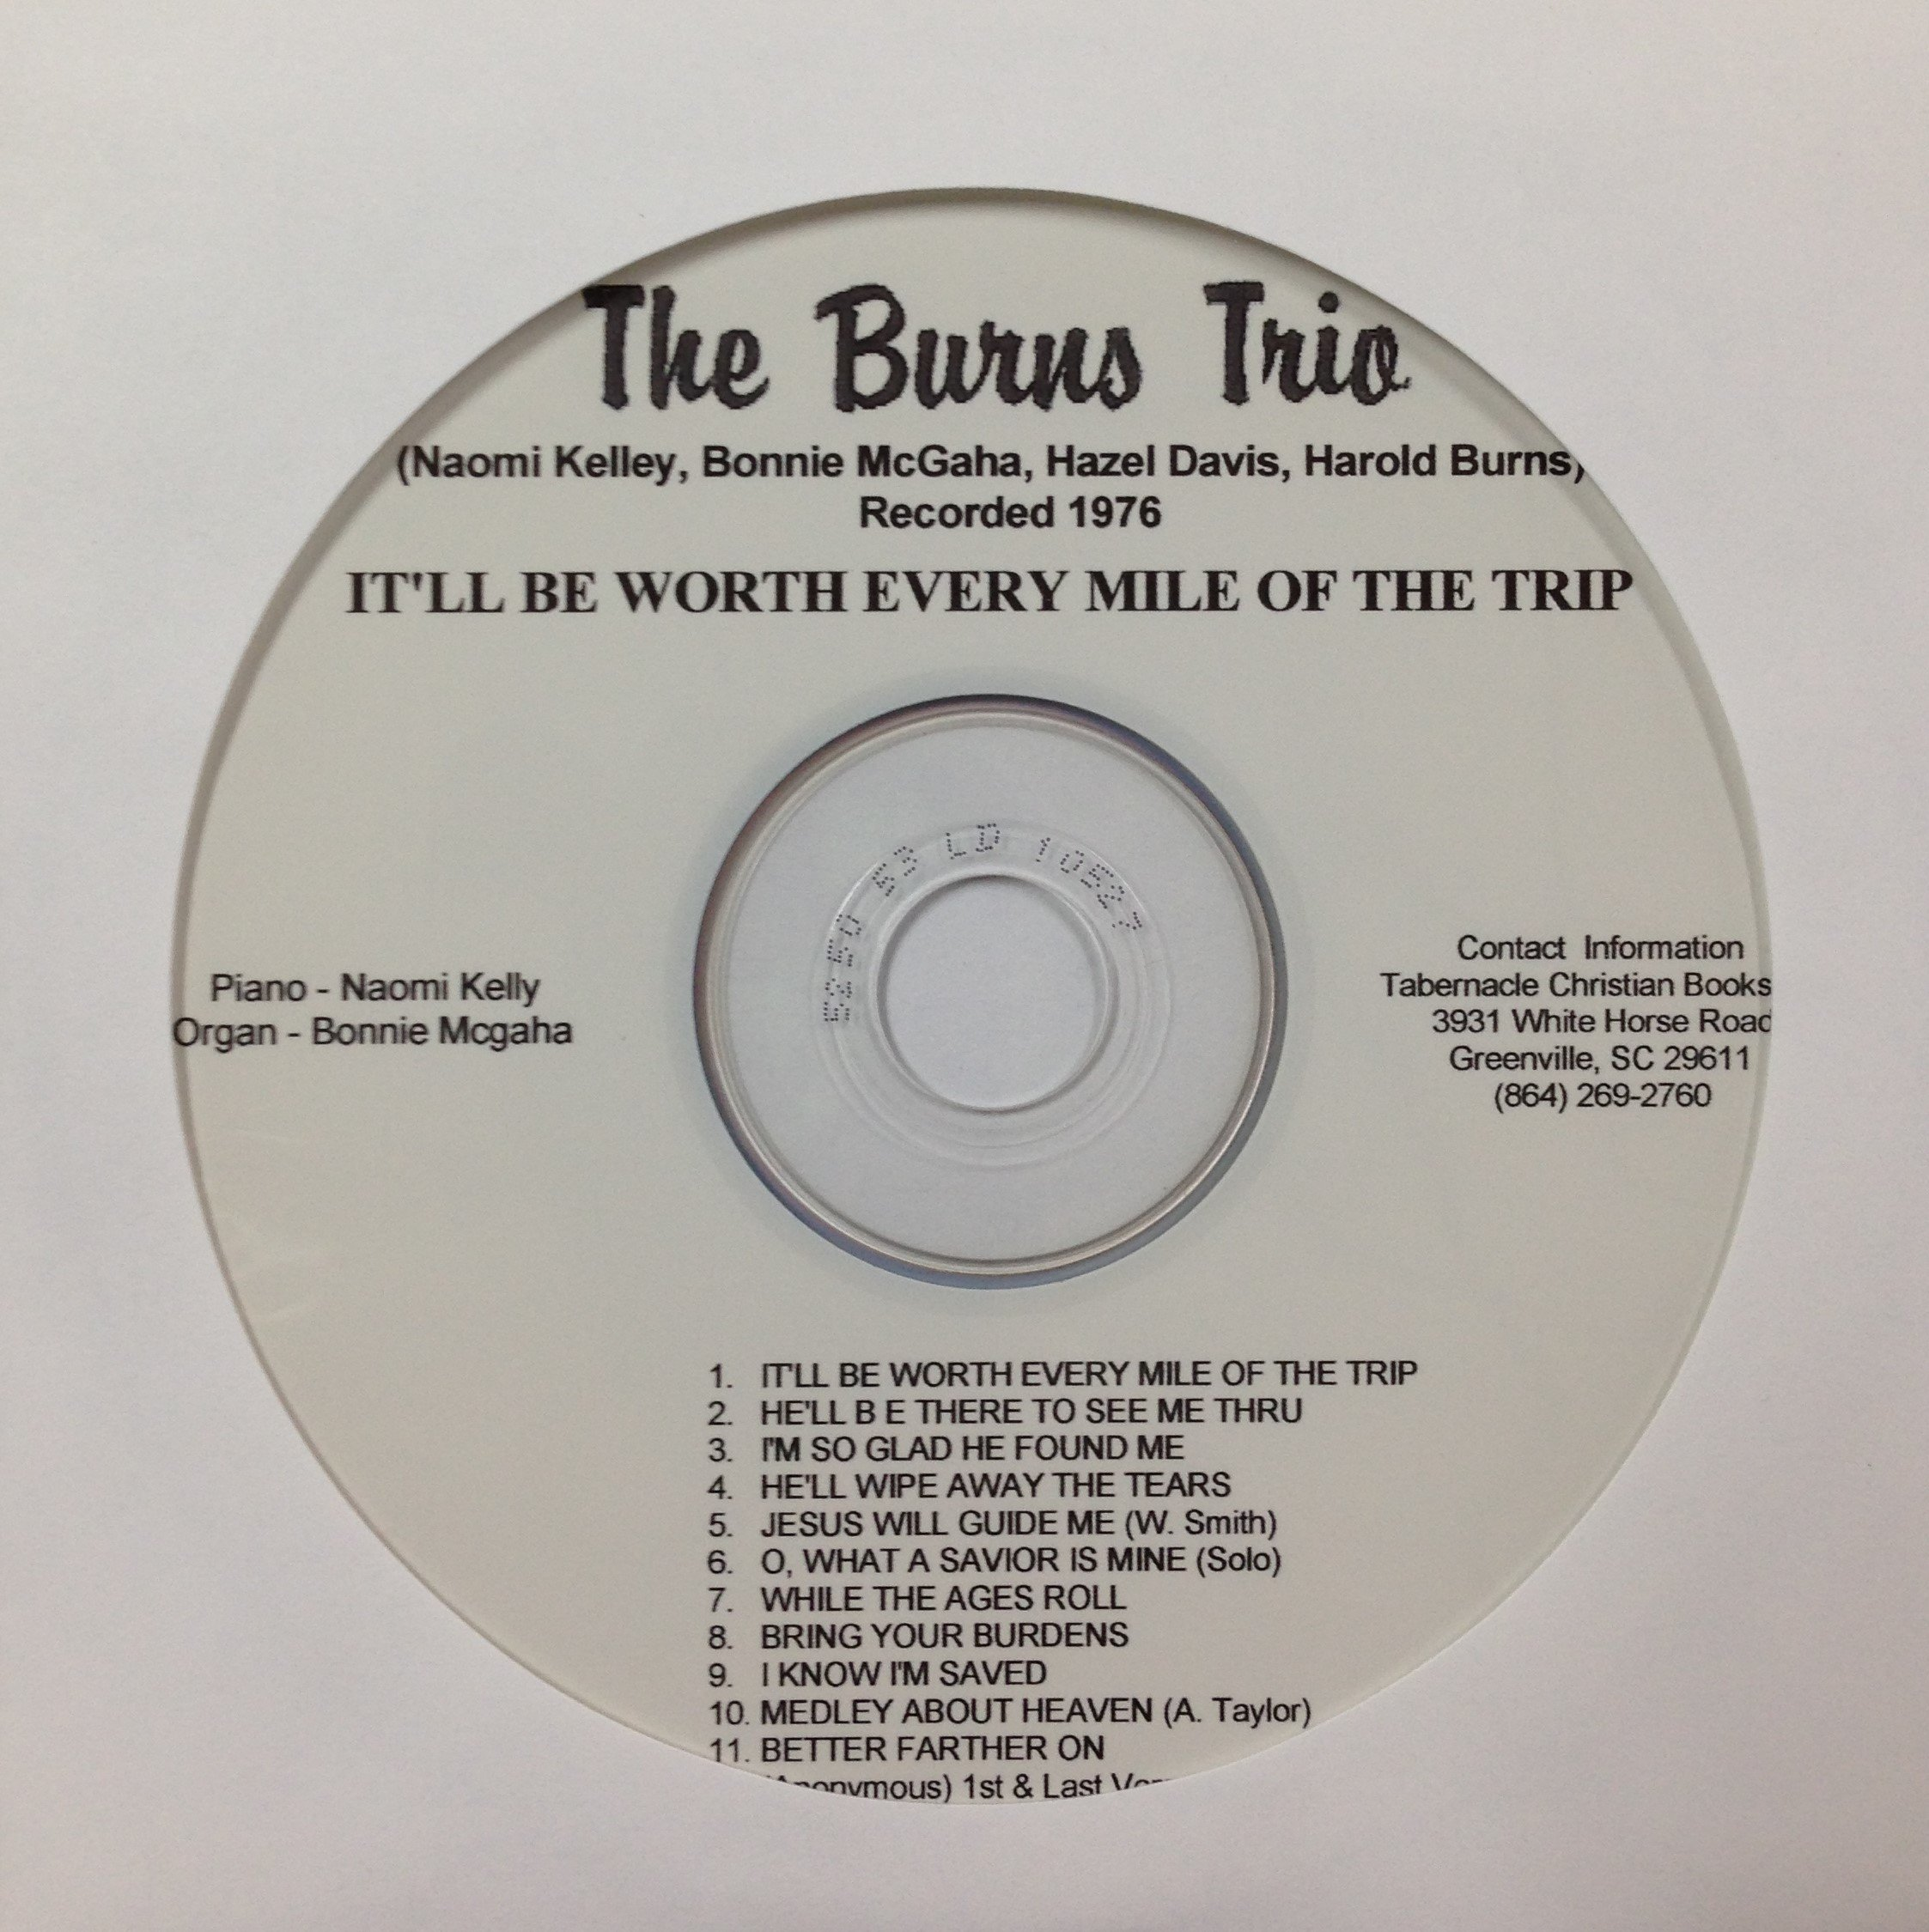 The Burns Trio:  It'll Be Worth Every Mile of the Trip  CD 00041